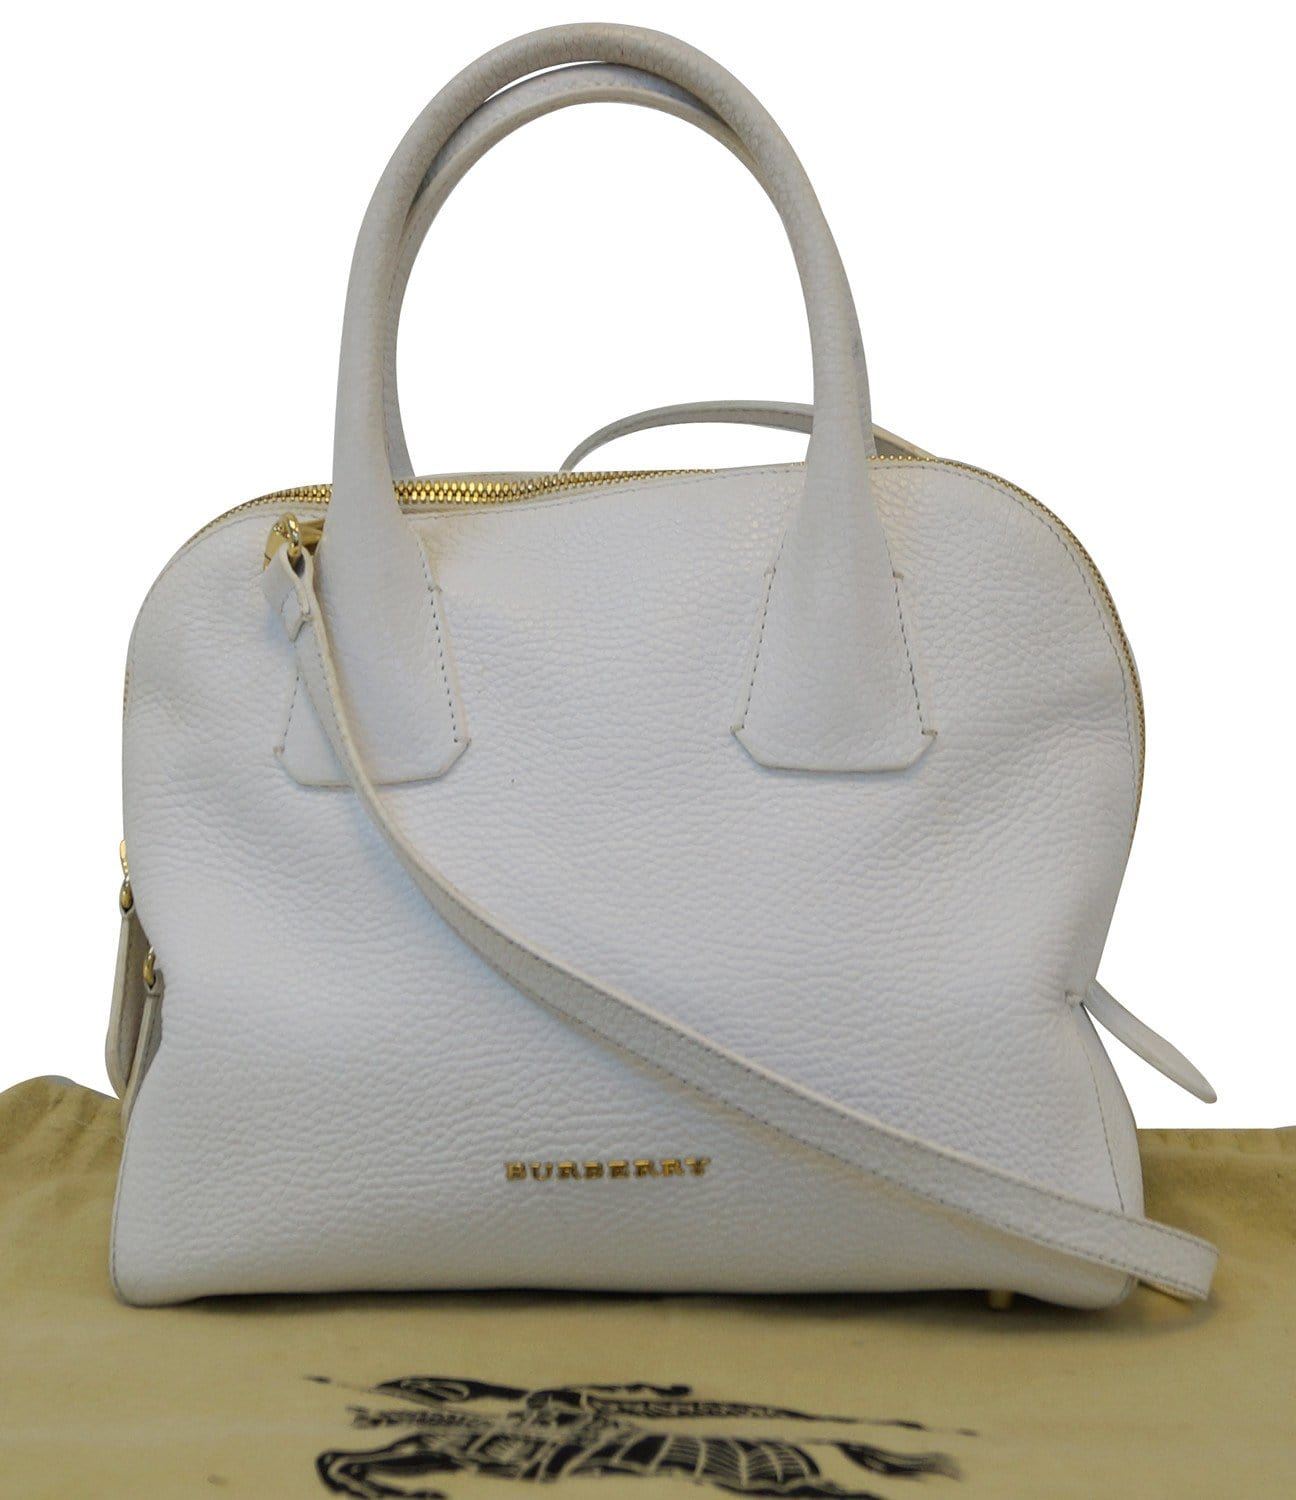 BURBERRY Grainy Leather White Bowling Shoulder Bag - 20% Off c63e96d9415f5